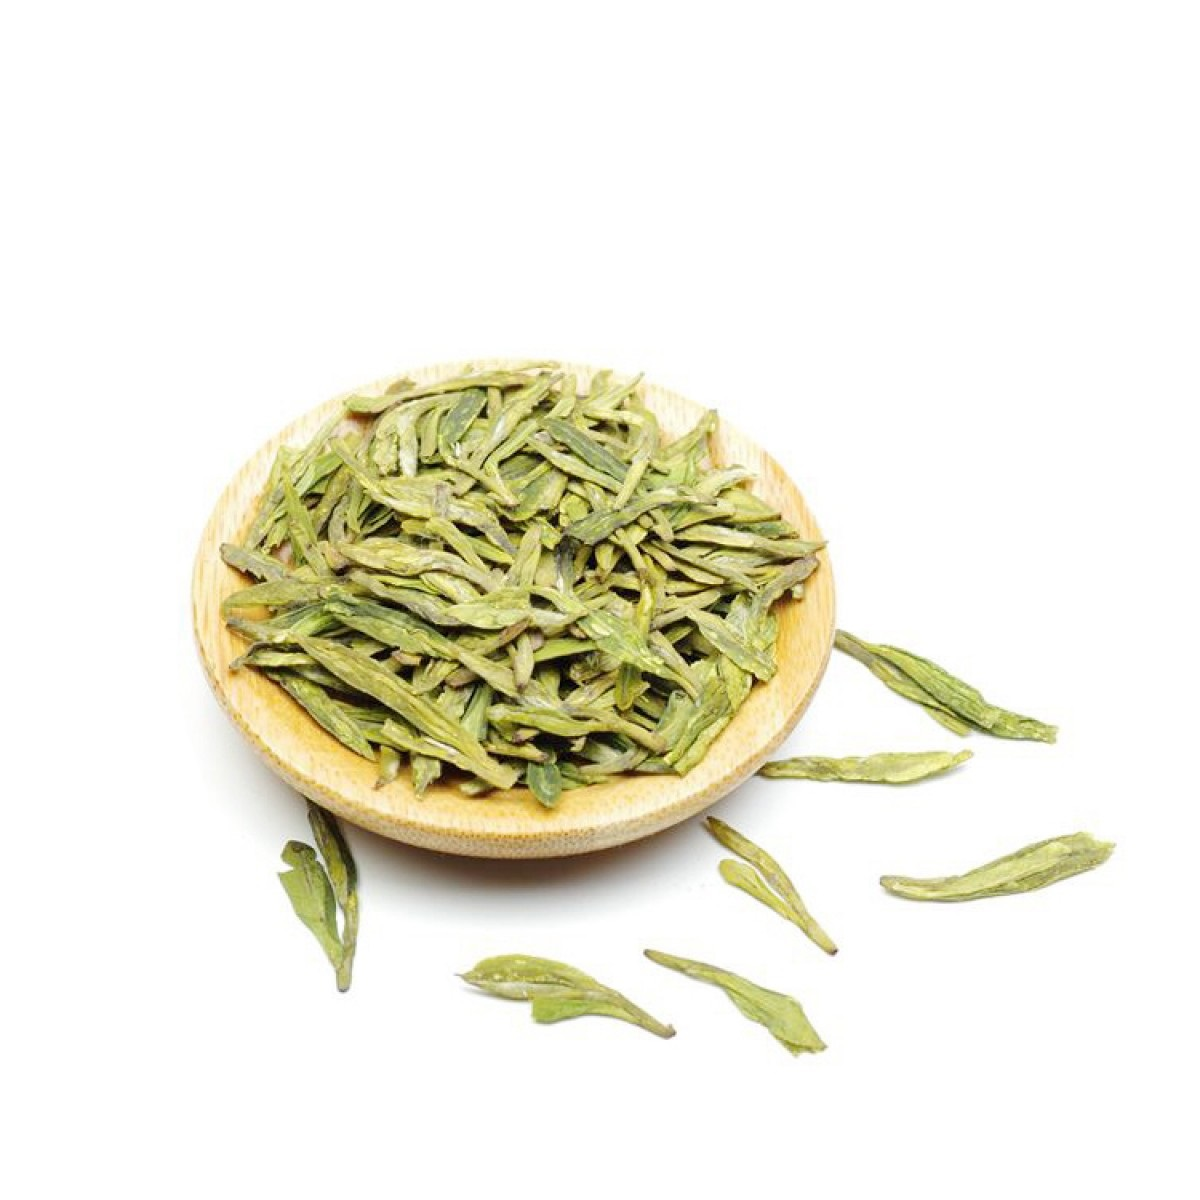 High Quality Spring superior Dragon Well Organic Green Tea - 4uTea | 4uTea.com